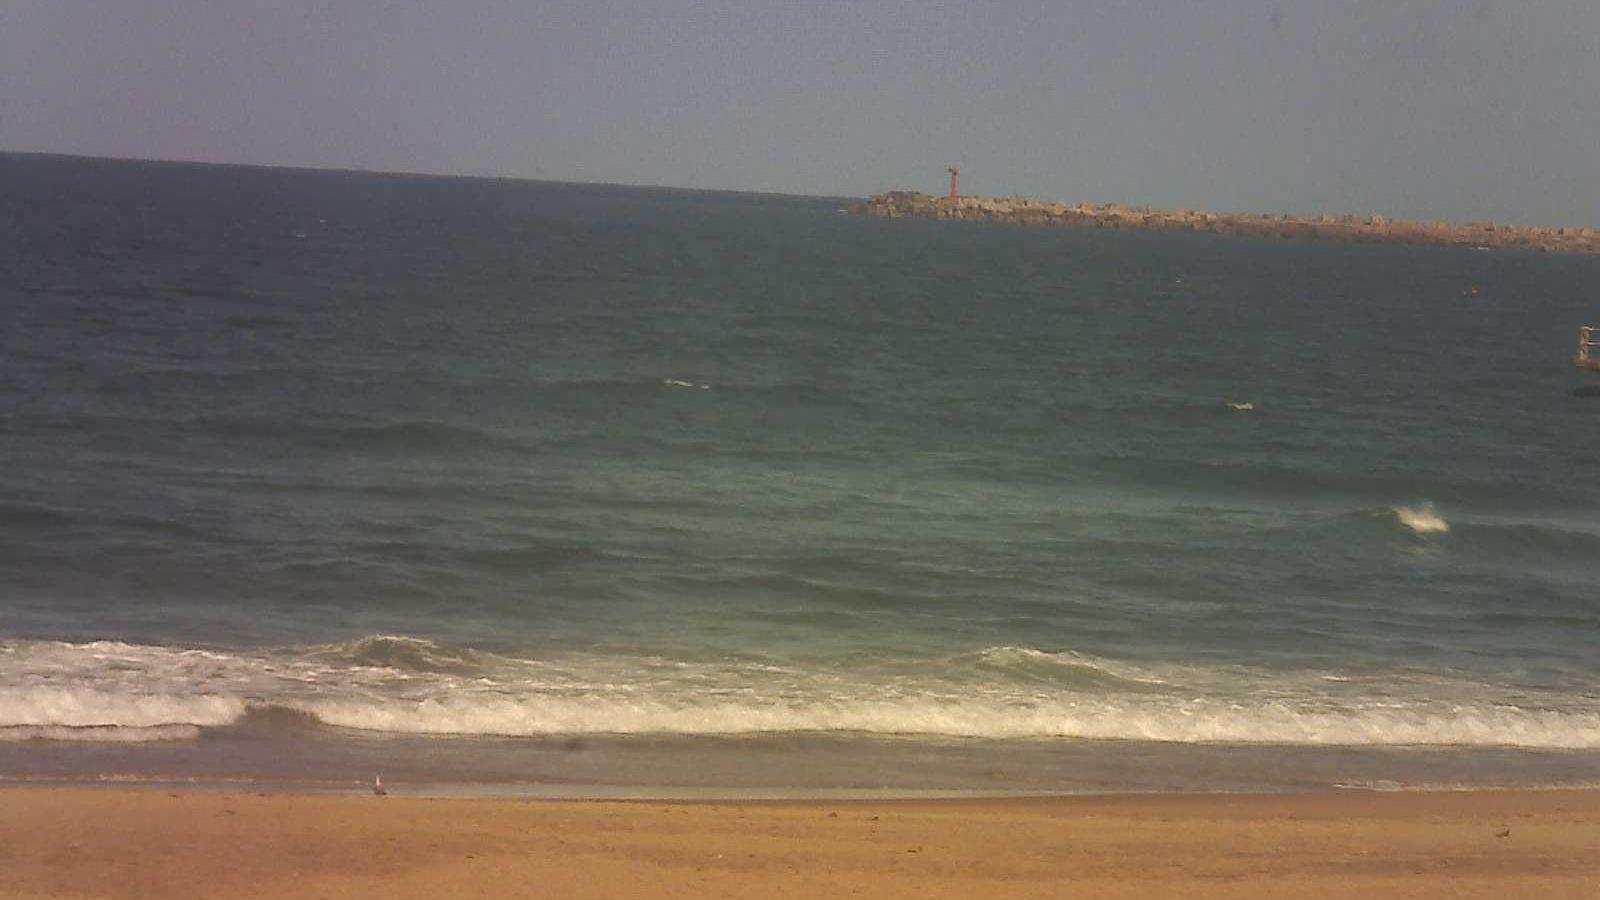 Webcam Durban: New Pier